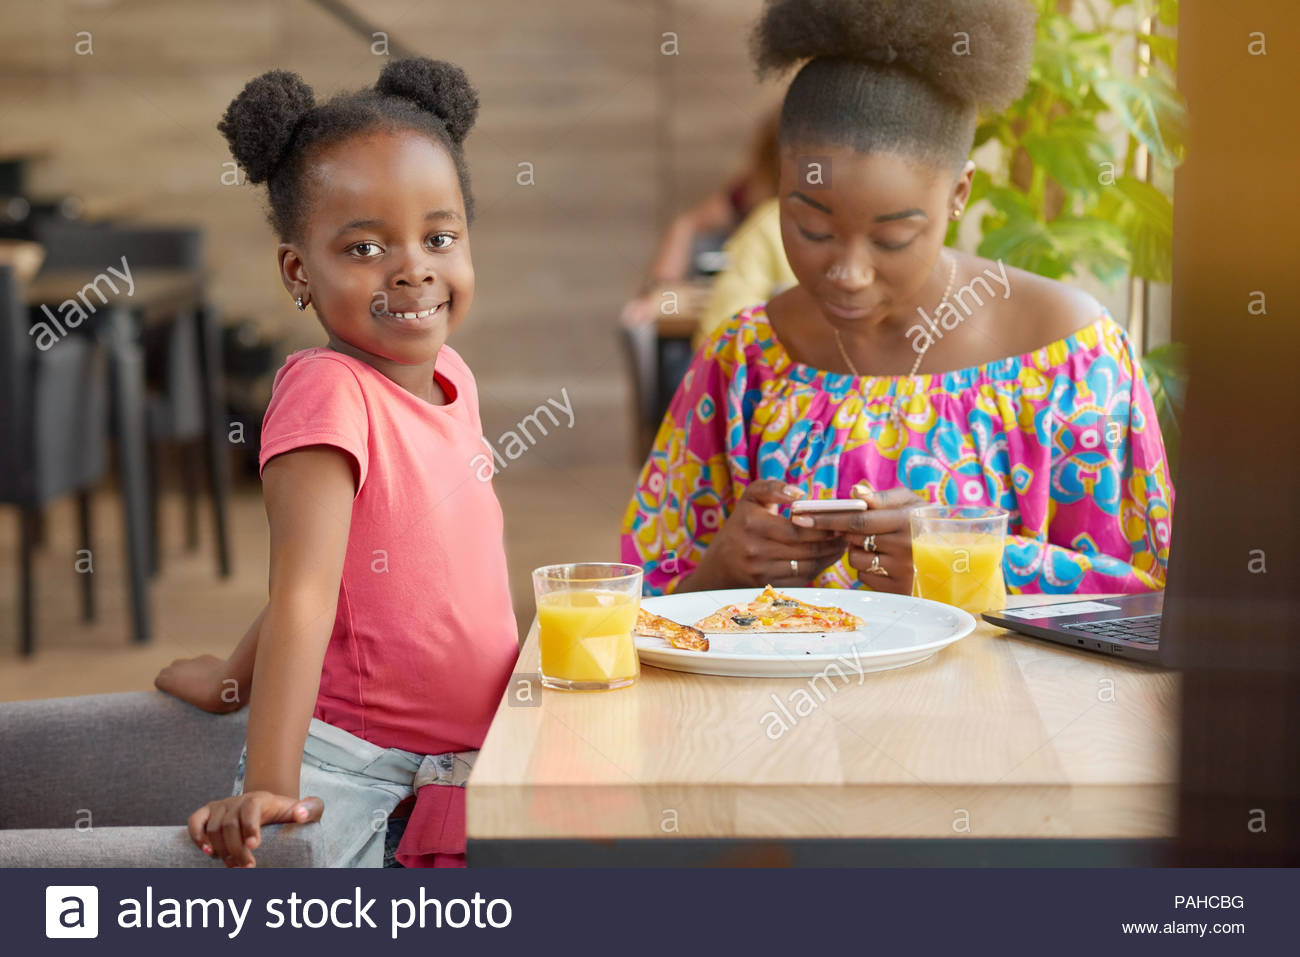 Happy smiling mother and daughter drinking orange juice, eating pizza. Mother keeping smartphone, chatting in Internet. Cute little girl looking at camera, feeling happy, spending family time. - Stock Image